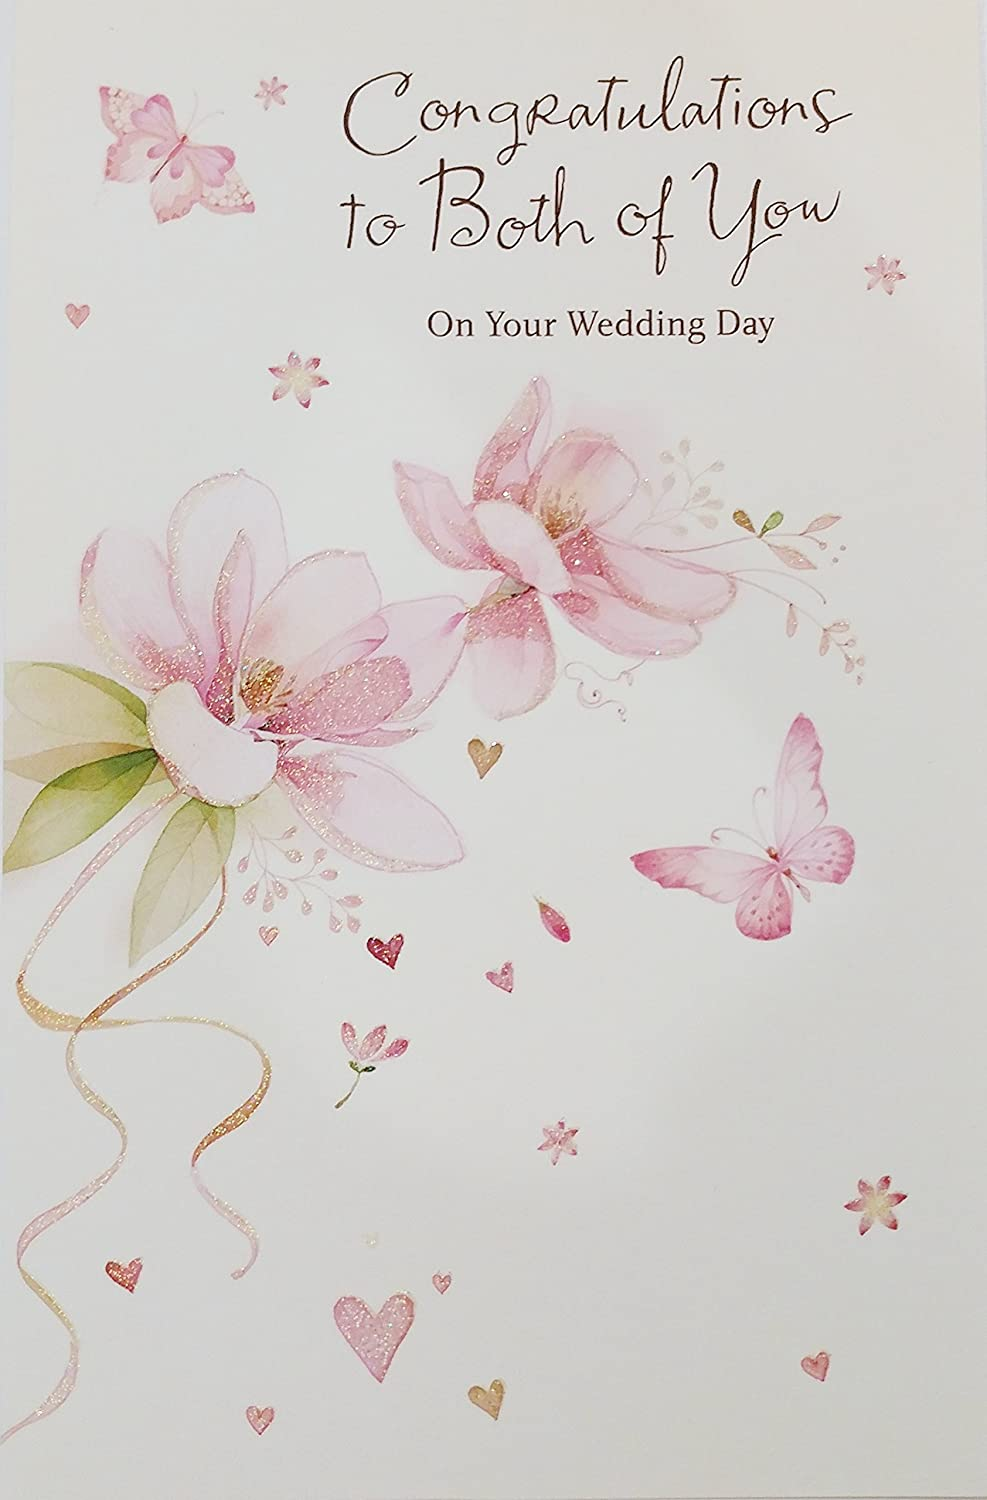 Amazon.com : Congratulations to Both of You On Your Wedding Day